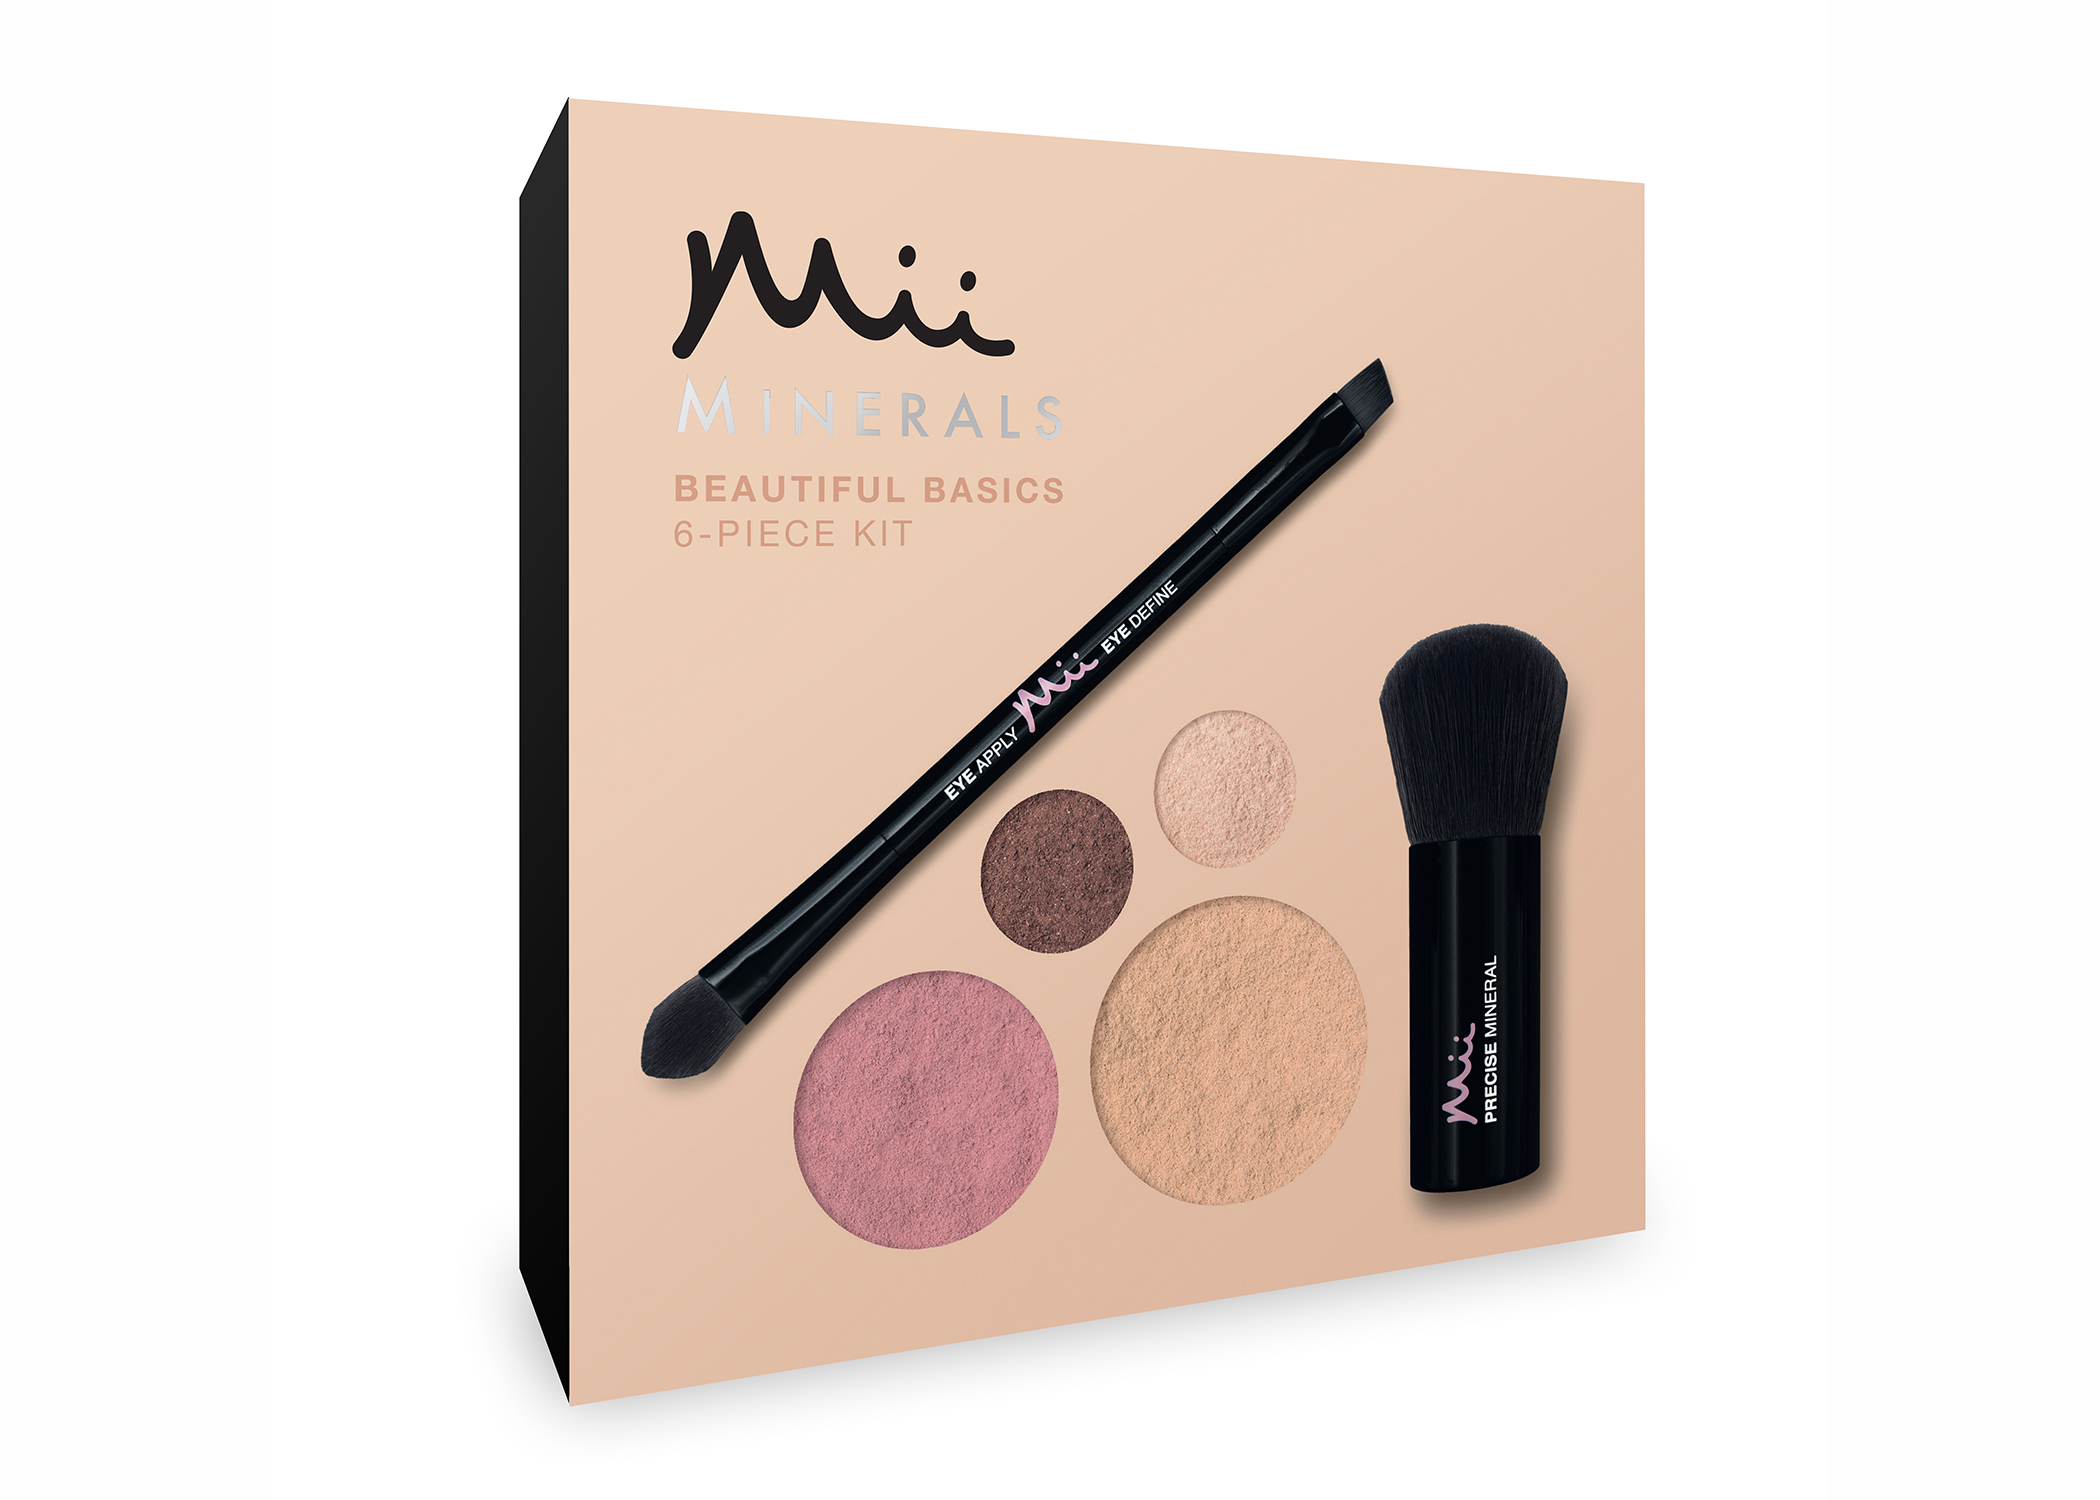 Mii Minerals Beautiful Basics Kit